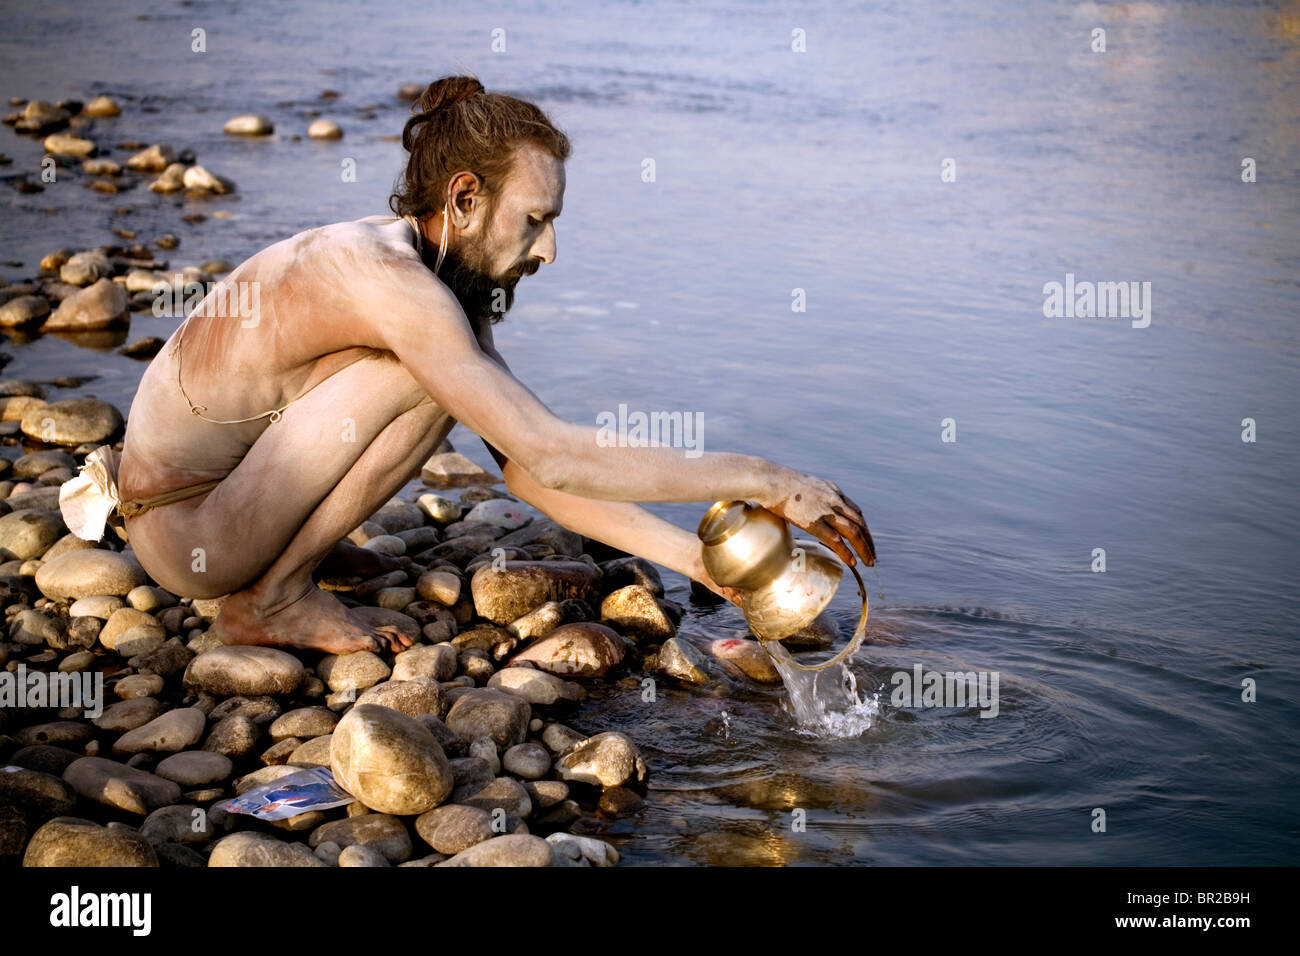 A Sadhu holy man is washing his bowl in river Ganges, Haridwar, Uttarakhand, India. - Stock Image